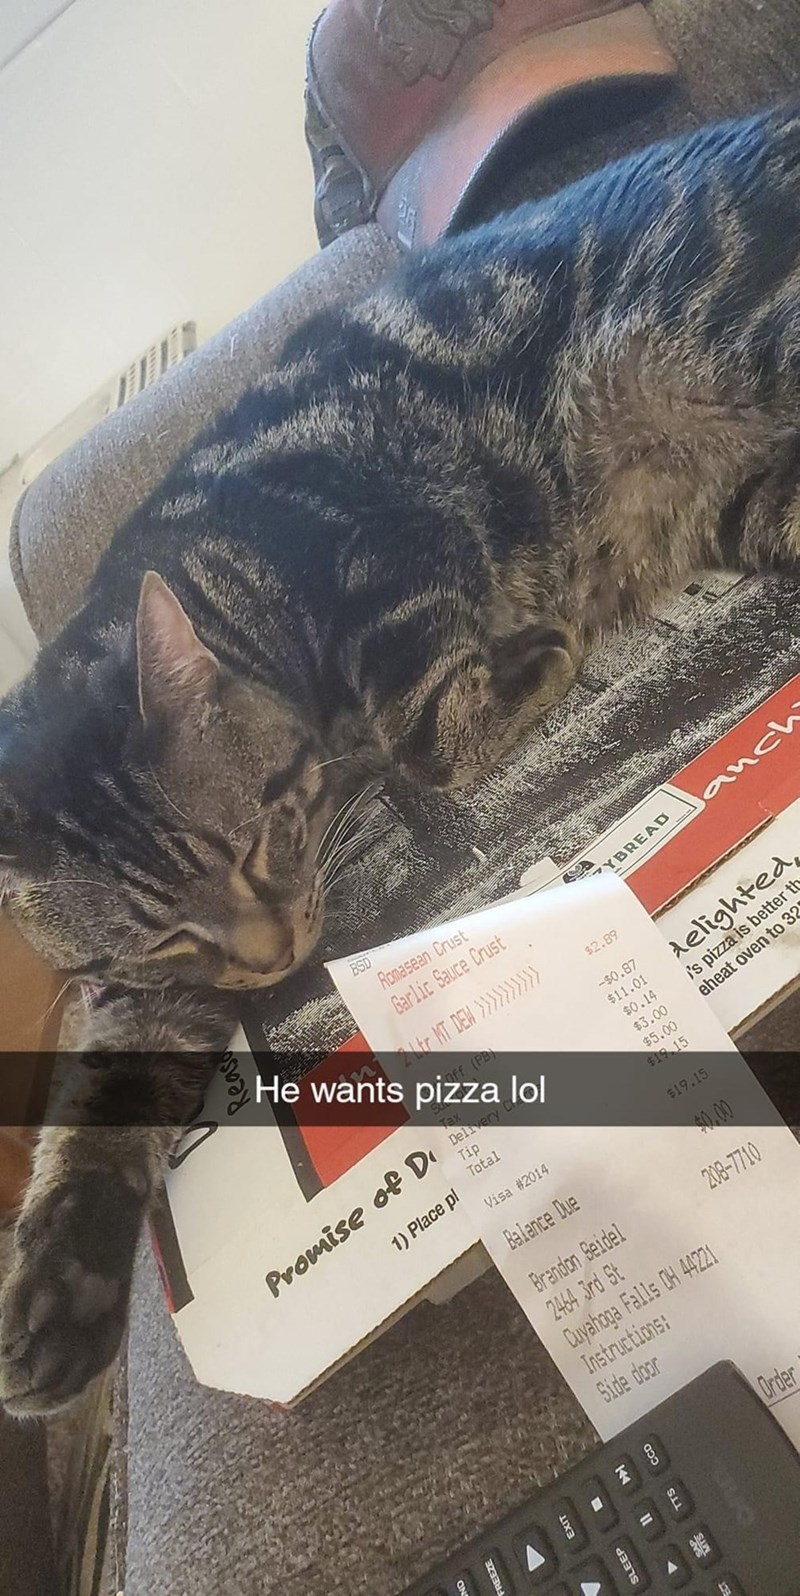 Cat - Romasean Crust anch Garlic Sauce Crust He wants pizza lol YBREAD $2.89 delighted, i's pizza is better th eheat oven to 32 Off (PB) -$0.87 $11.01 Tax Delivery C Tip Total $0.14 $3.00 $5.00 Promise of D $19 15 1) Place pl Visa #2014 $19.15 Balance Due 0.00 Brandon Seidel 2464 3rd St Duyahopa Falls OH 4421 Instructions: Side door 208-7710 Order Reas EXIT SLEEP TTS